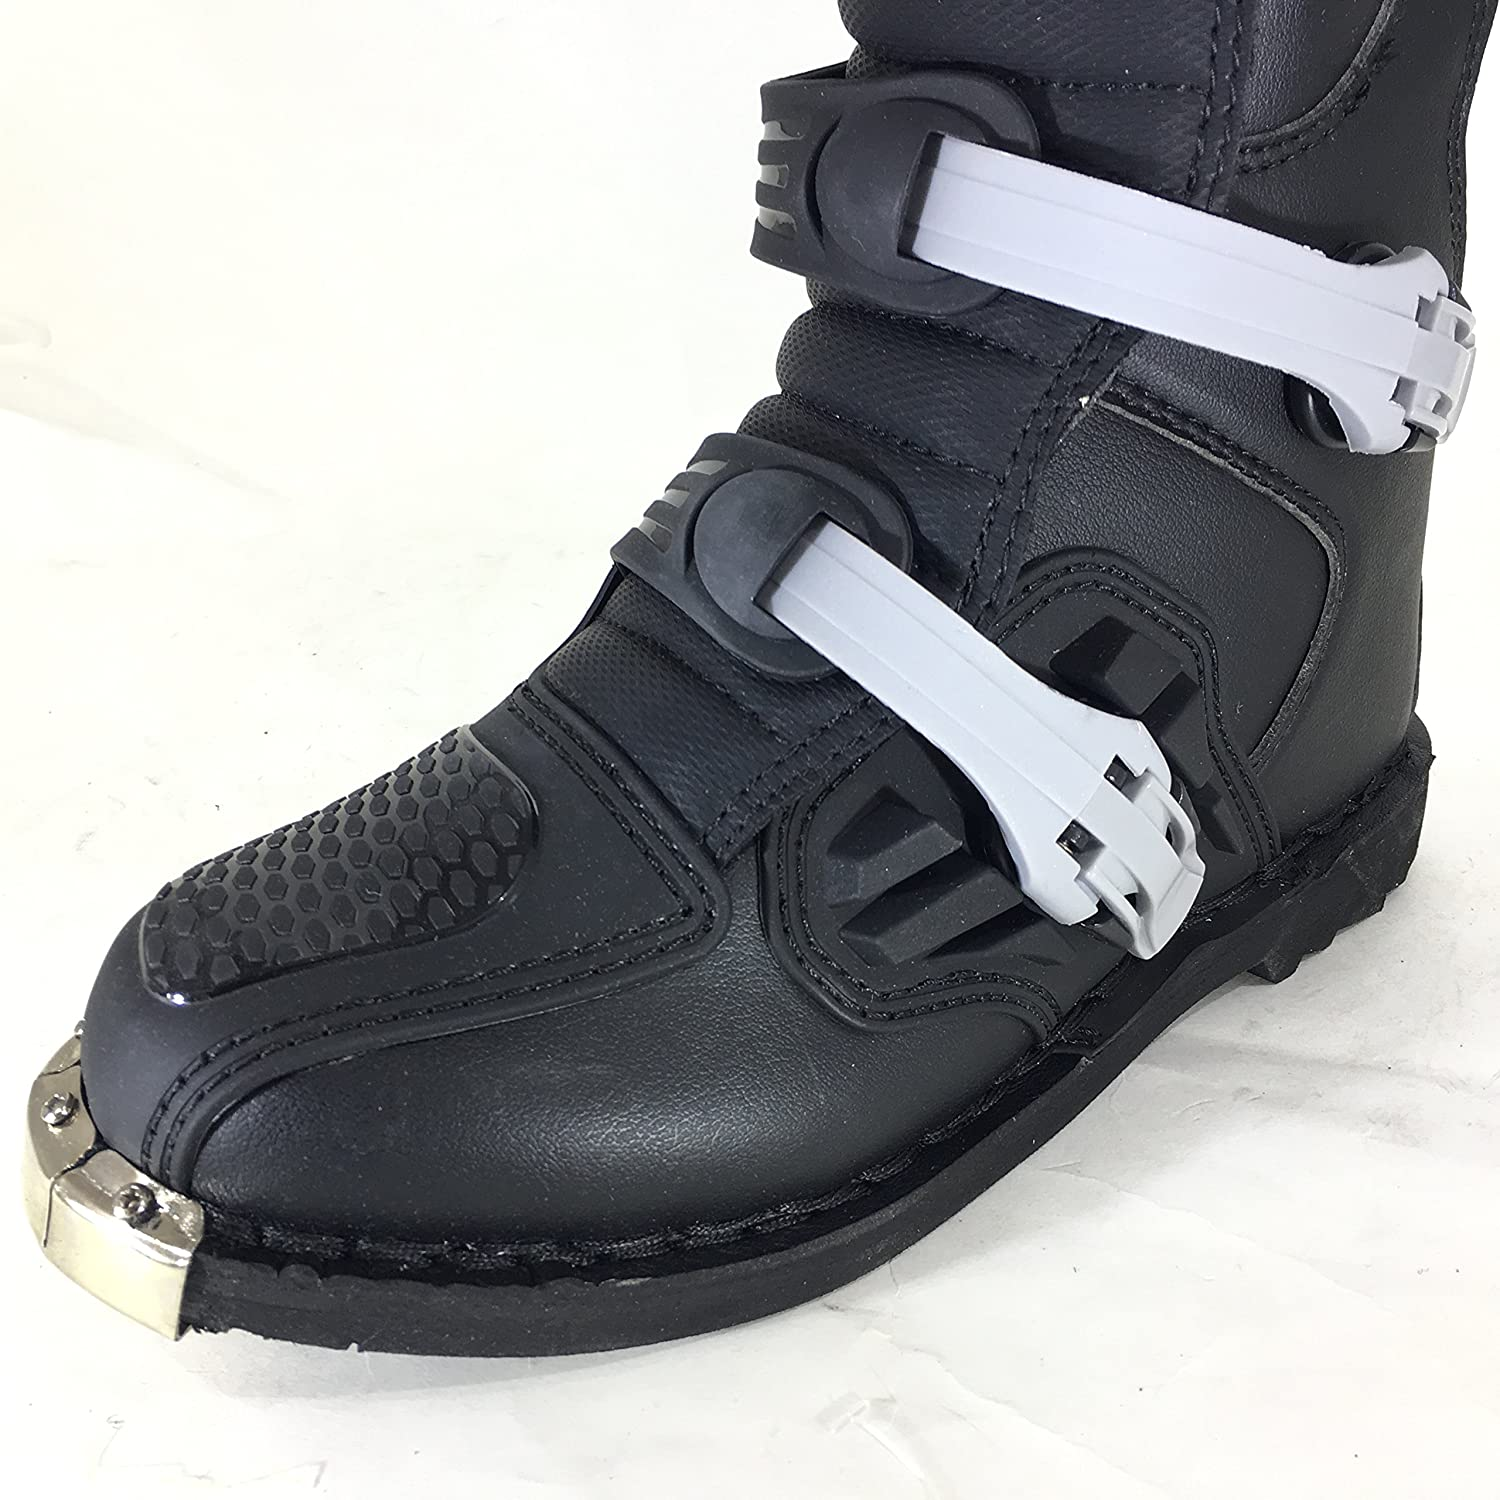 WULFSPORT Track Star Fibra Botas DE Motocross MX Adultos Quad Carreras Enduro Deportes Protection Boots Negro EU 43//UK 9